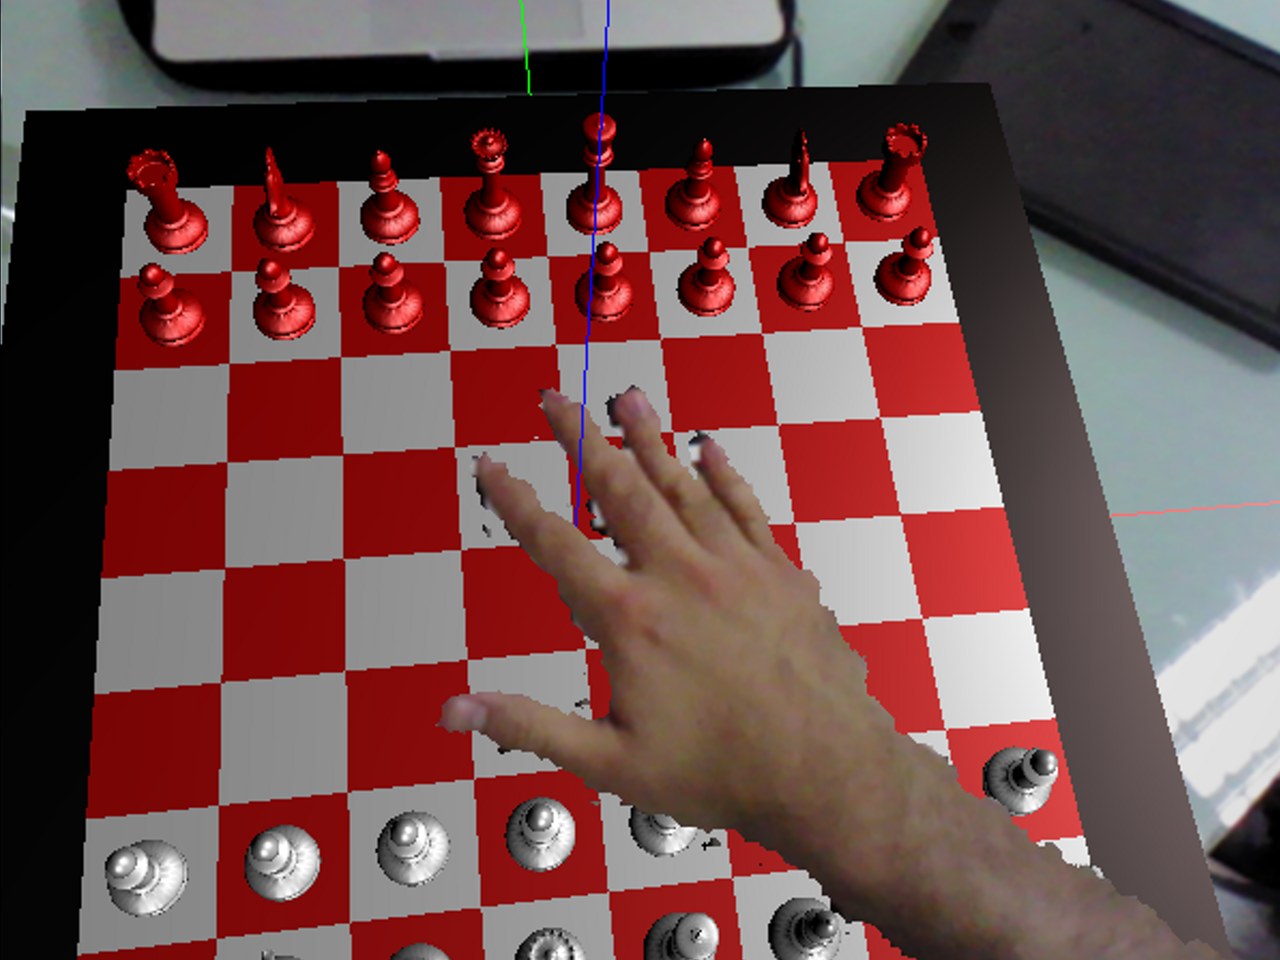 An Interactive Augmented Reality Chess!